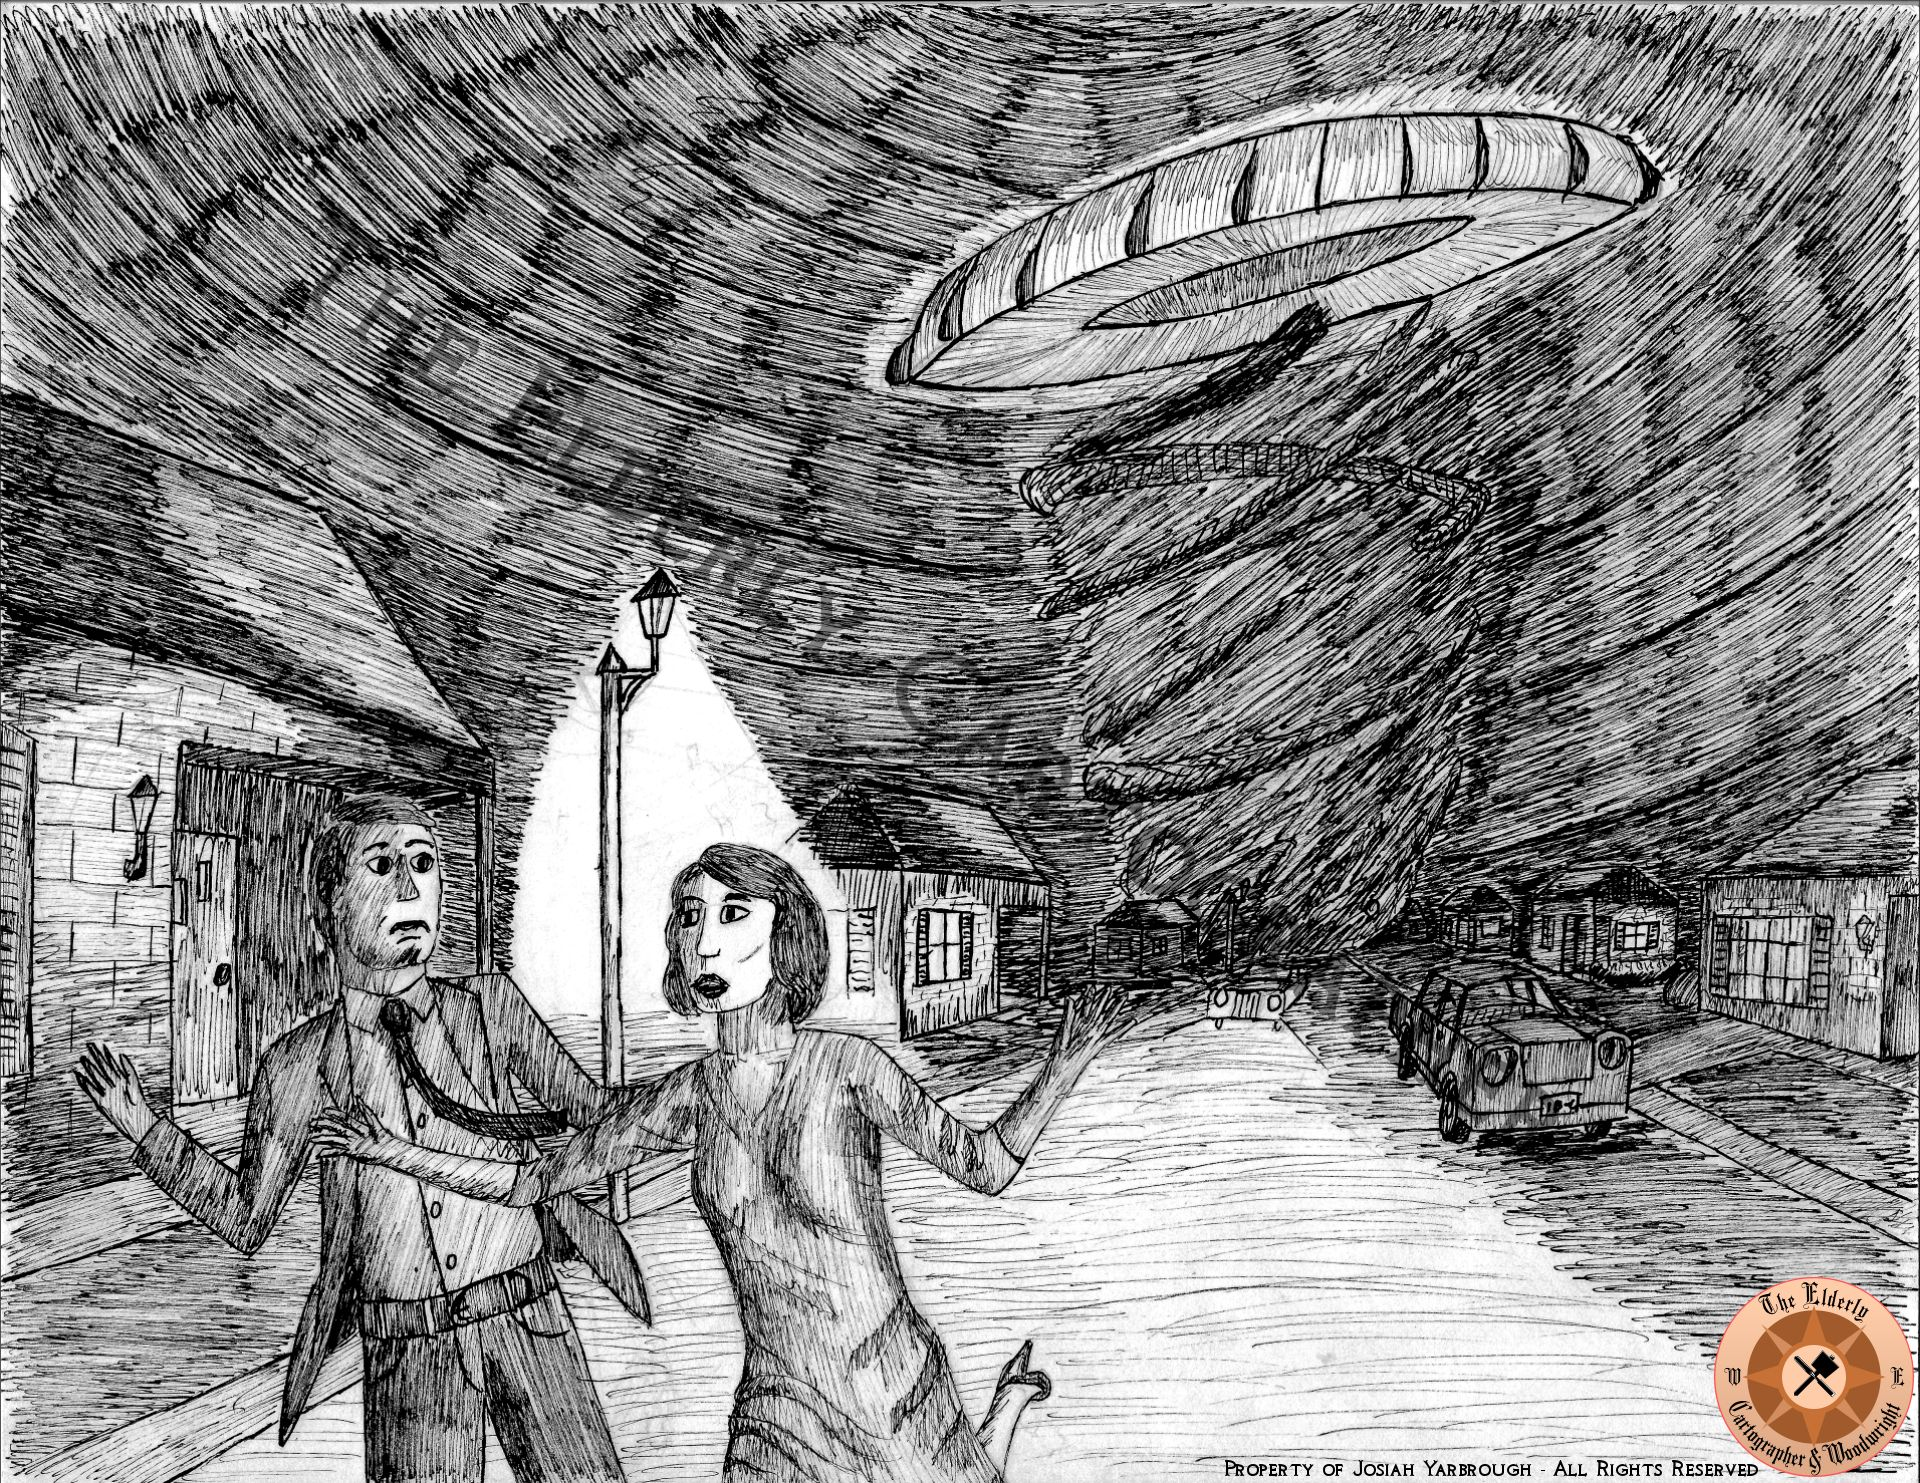 Attack of the Vortexian Saucer by EC&W